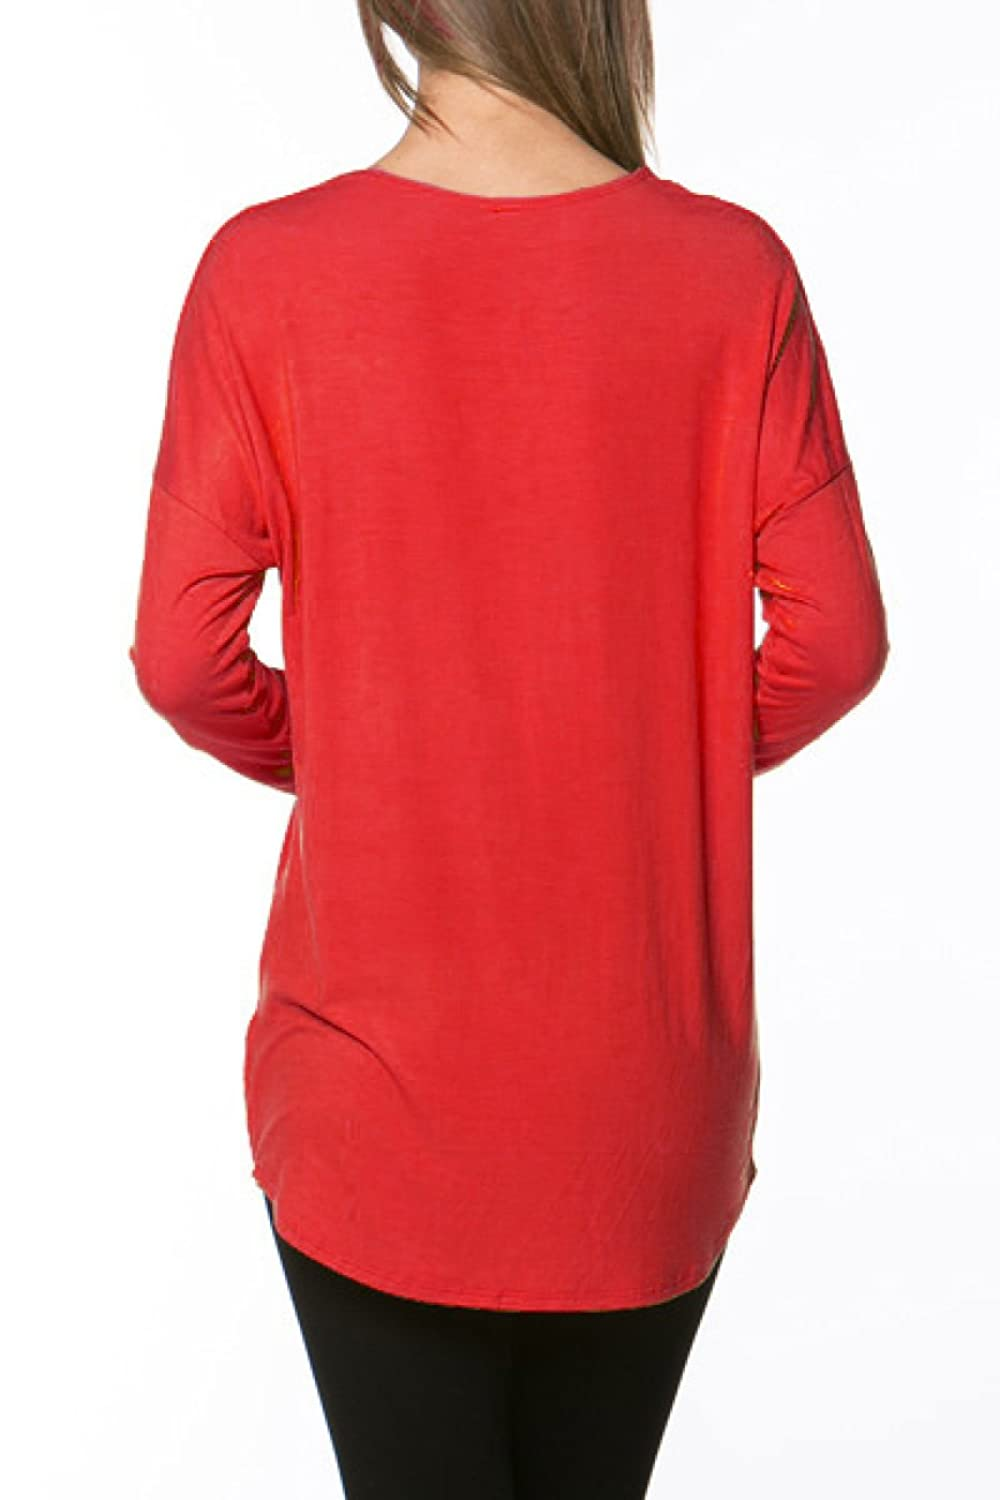 2LUV Women's Trendy Knit Long Sleeve Tunic Top